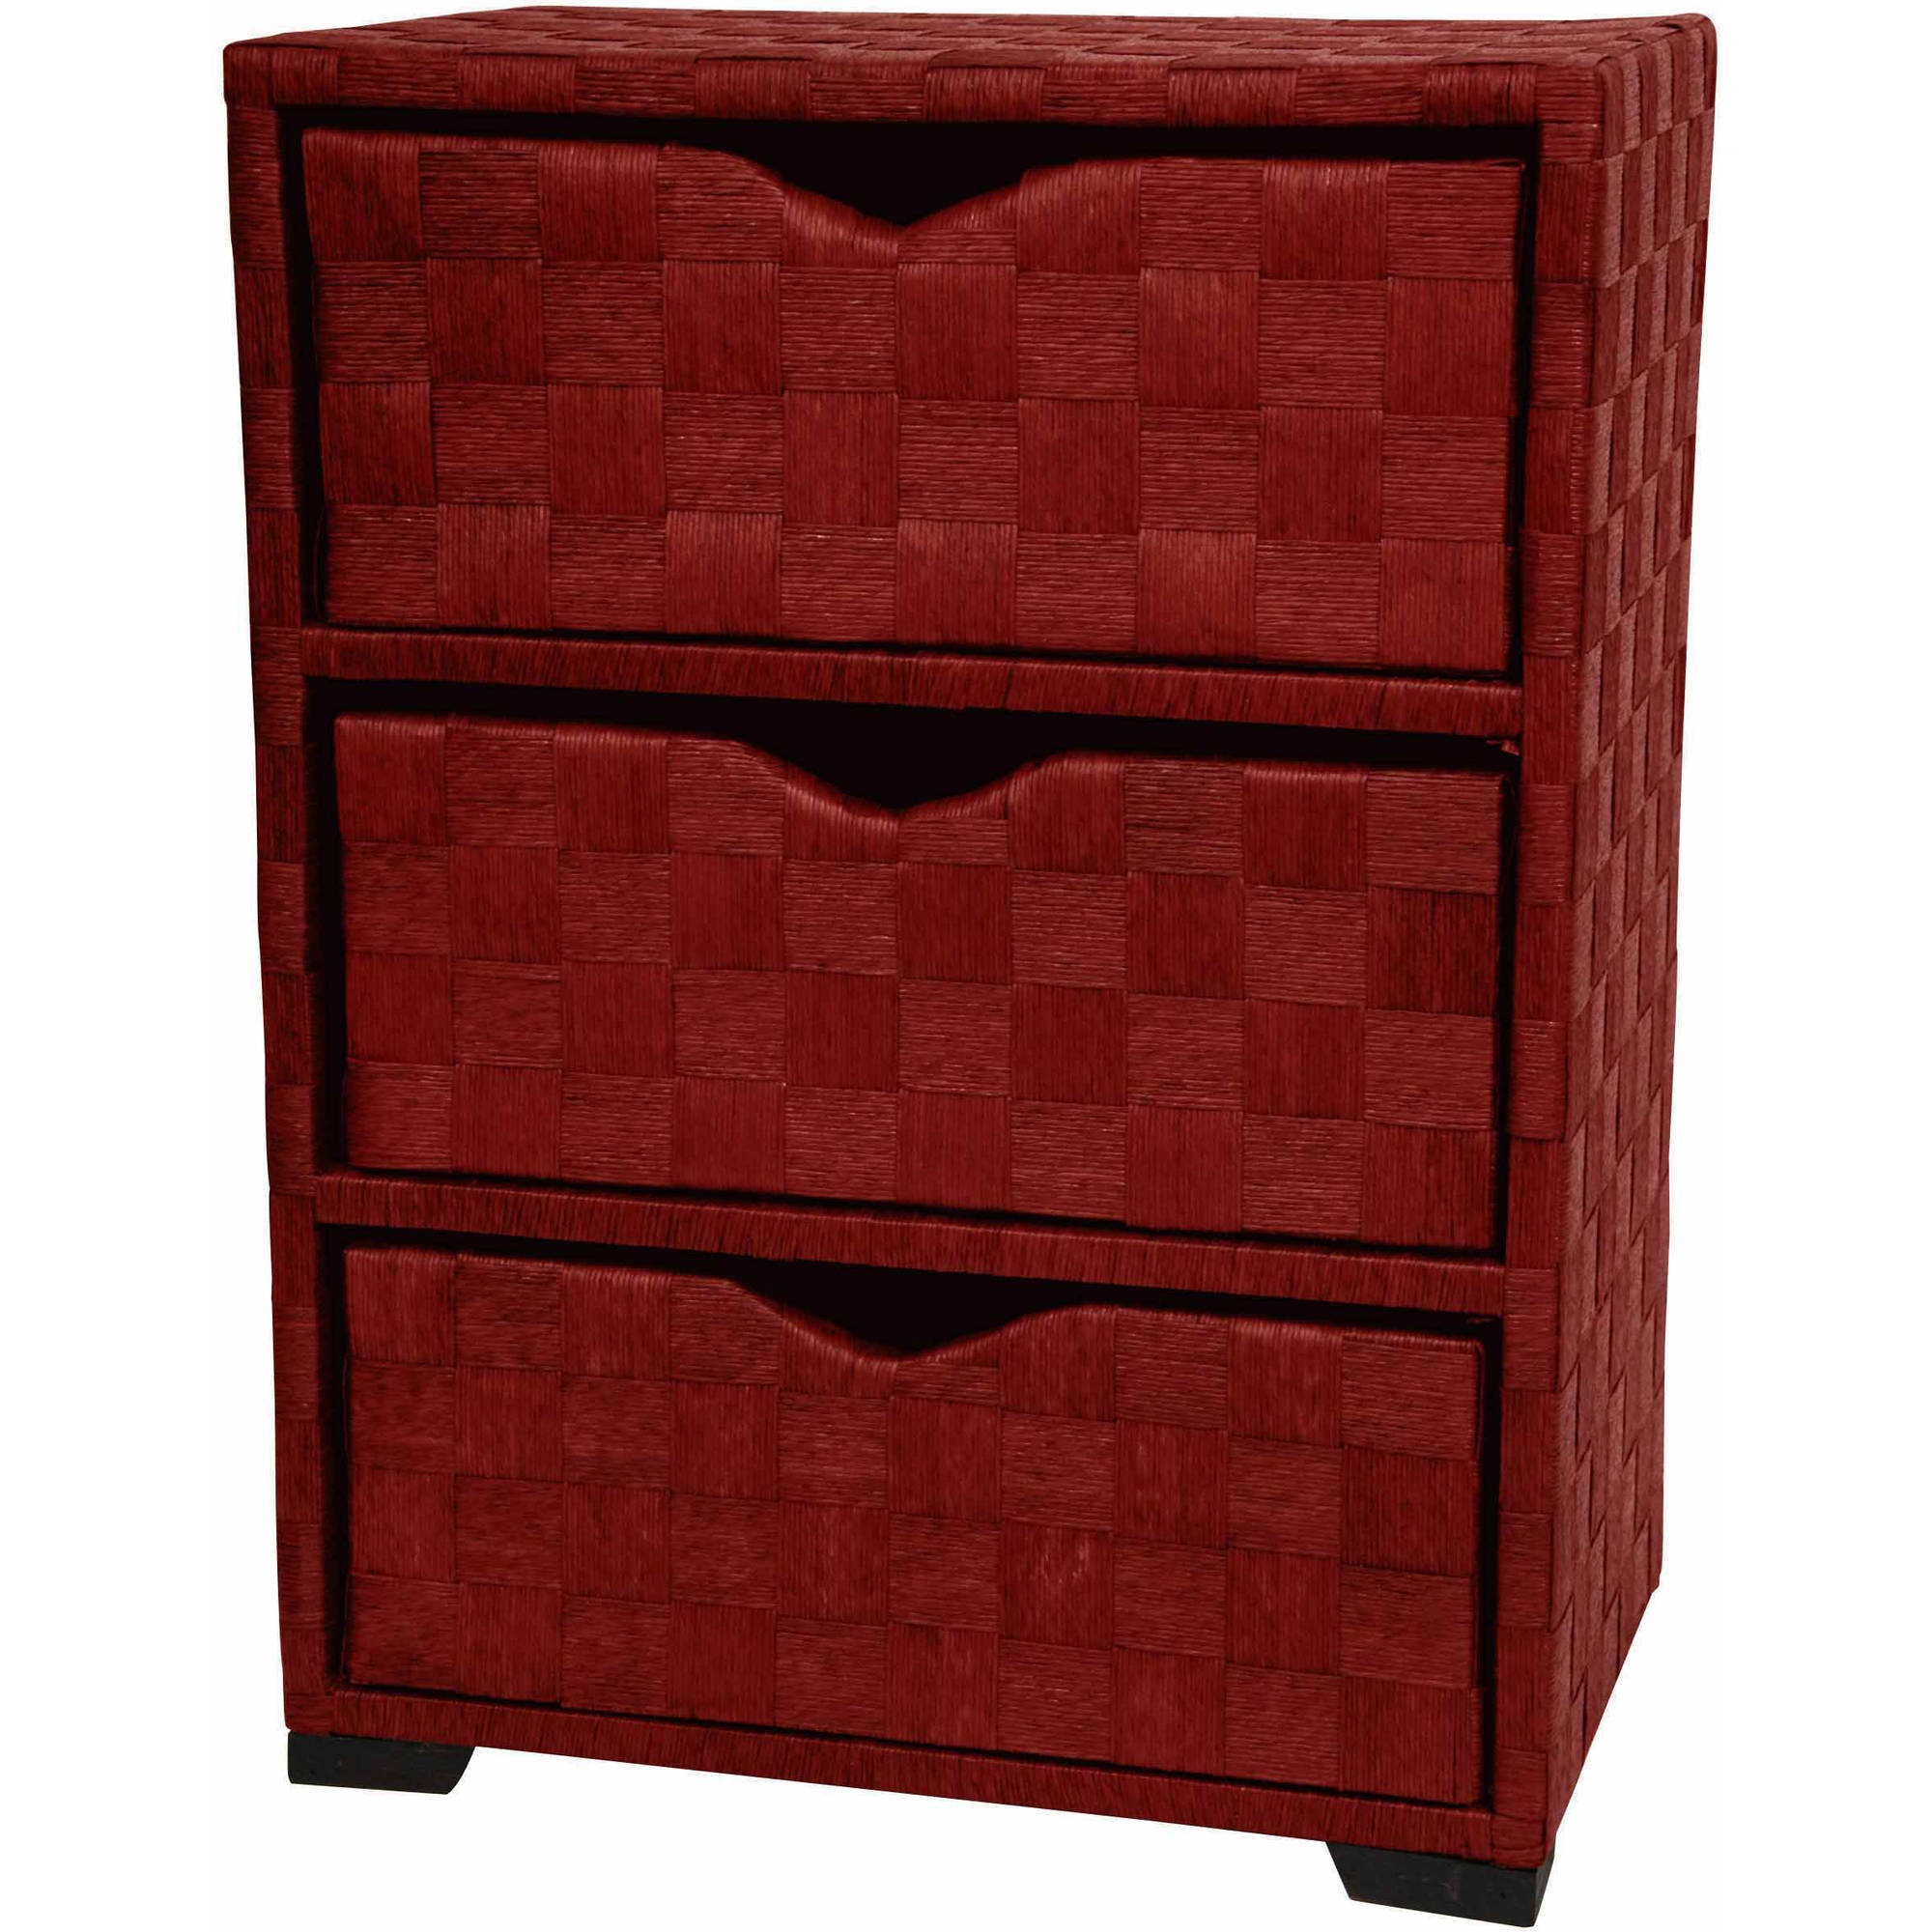 Natural Fiber Chest of Drawers, 3 Drawer